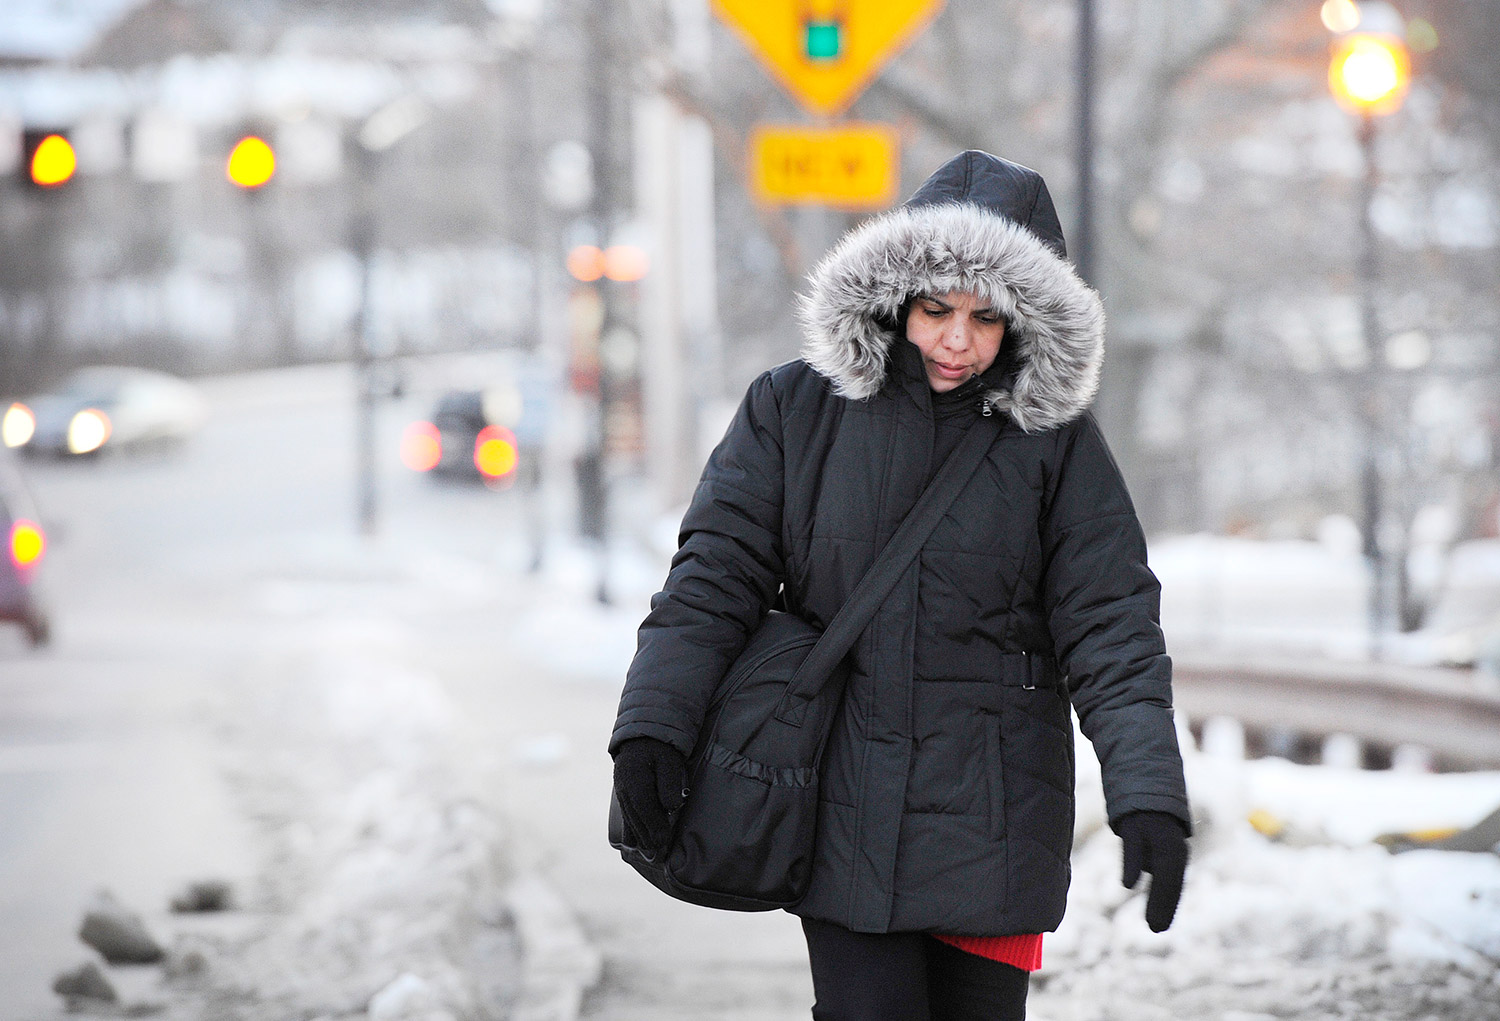 A woman bundled up for frigid weather makes her way up the sidewalk on Factory Island in Saco on Thursday. The temperature was expected to drop below zero overnight. Shawn Patrick Ouellette/Staff Photographer